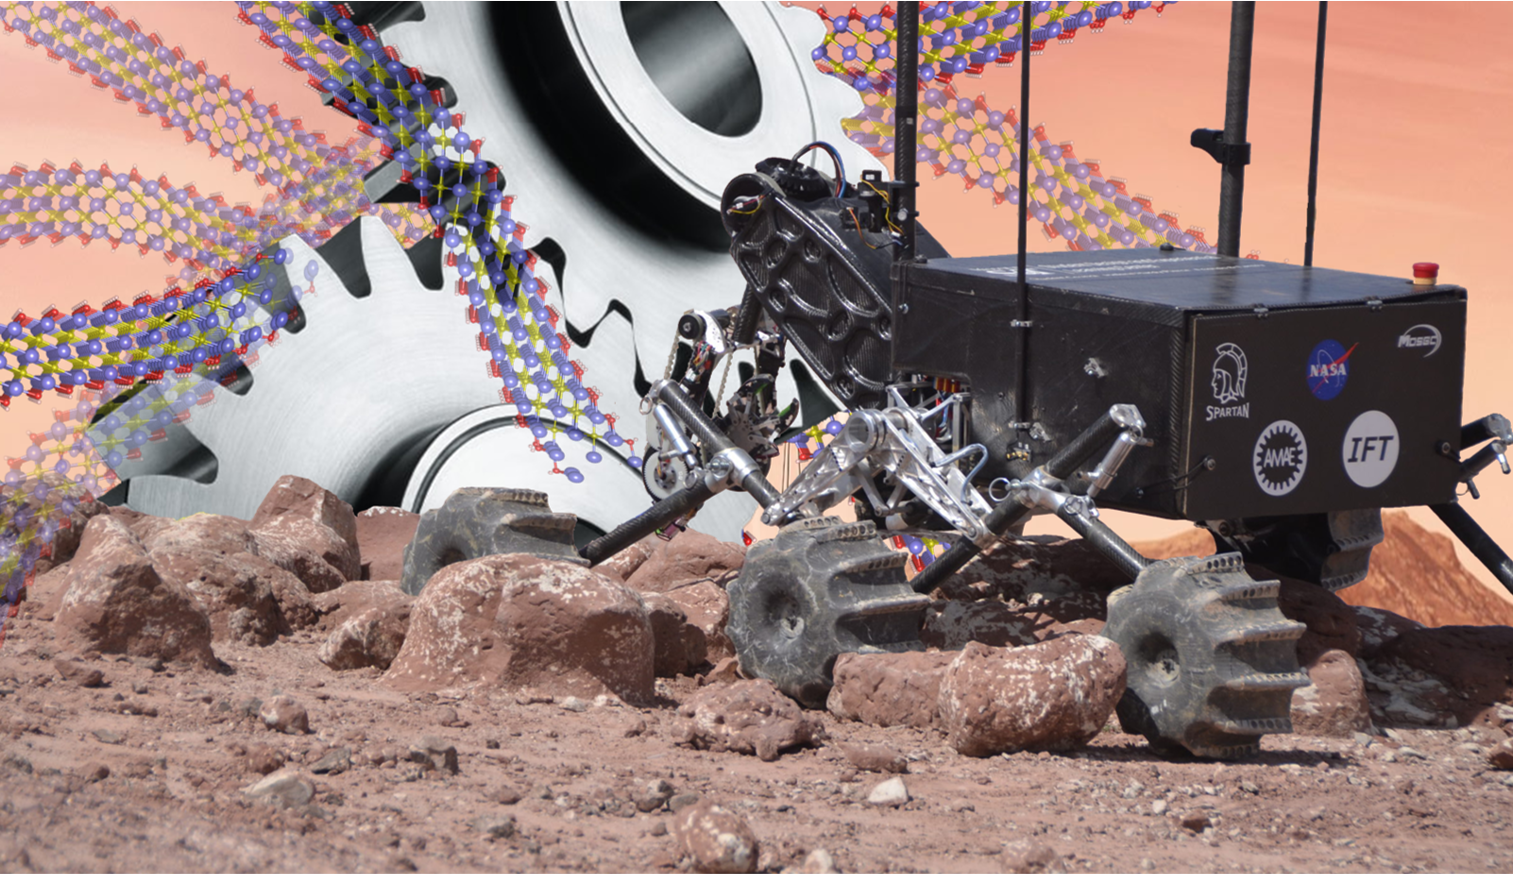 New Material may Reduce Wear and Tear on Future Space Rovers - AZoM